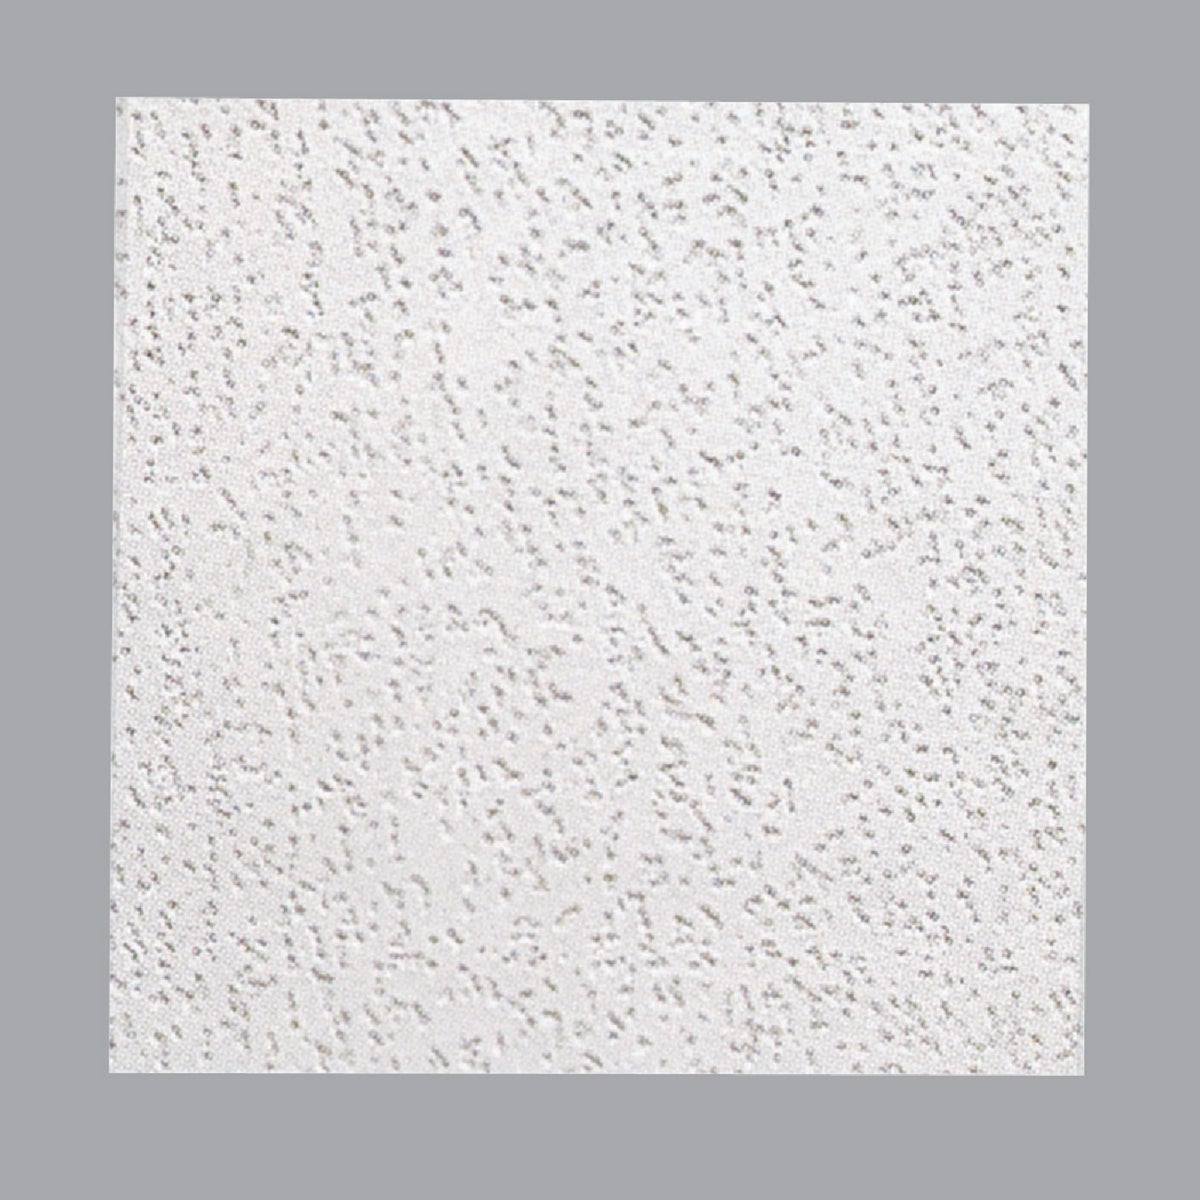 "12"" CARILON CEILING TILE - BTLON by Bldg Prod Canada Cor"